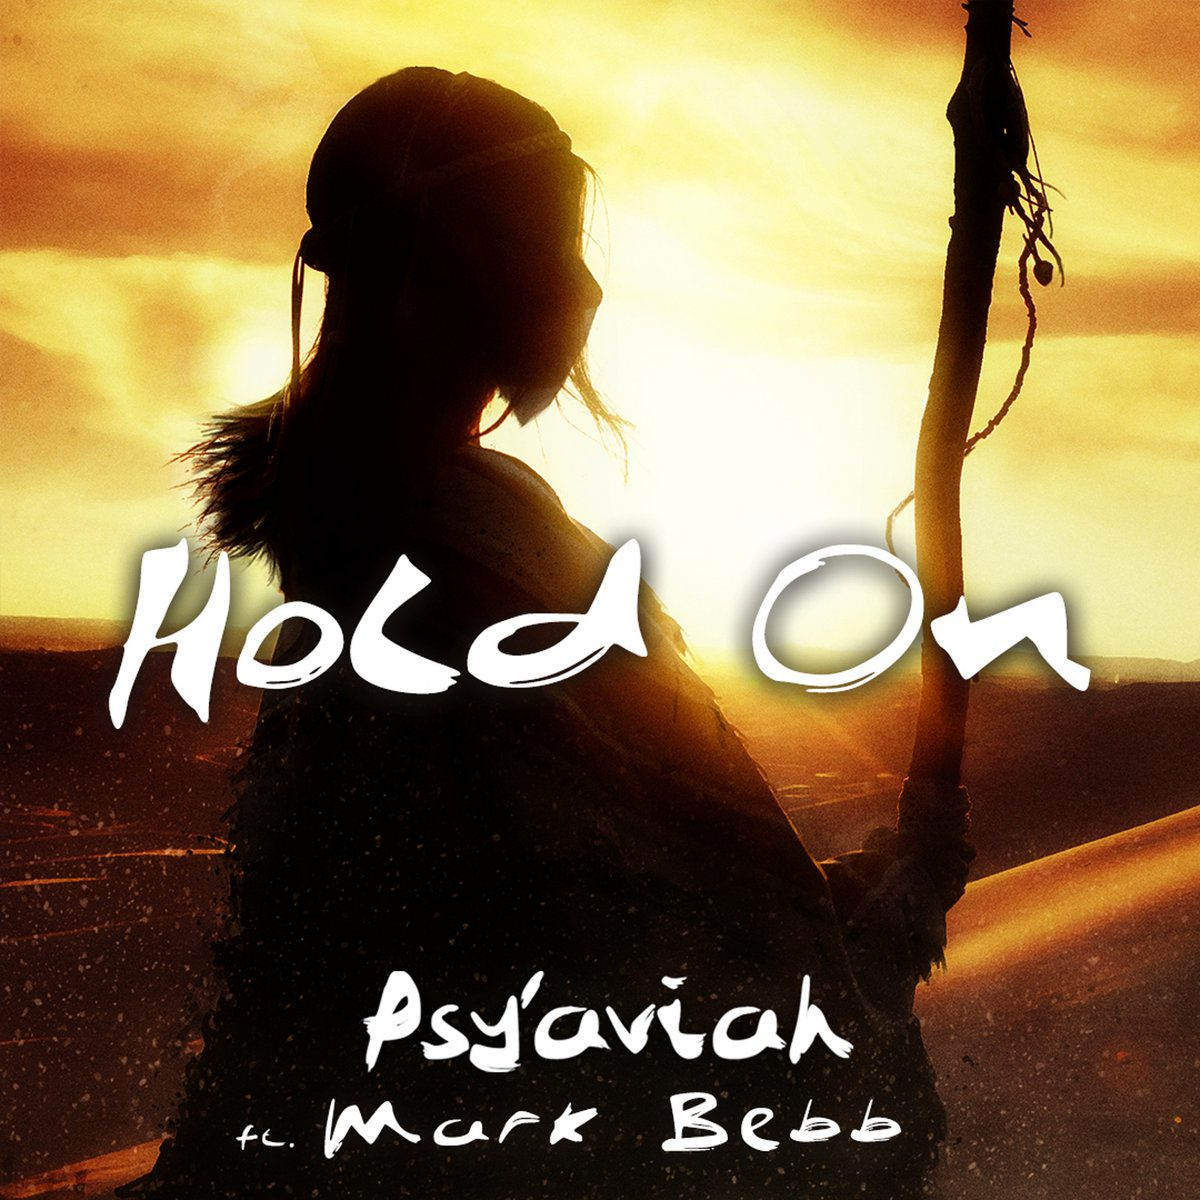 Psy'Aviah releases 'Hold On' EP - available for immediate download